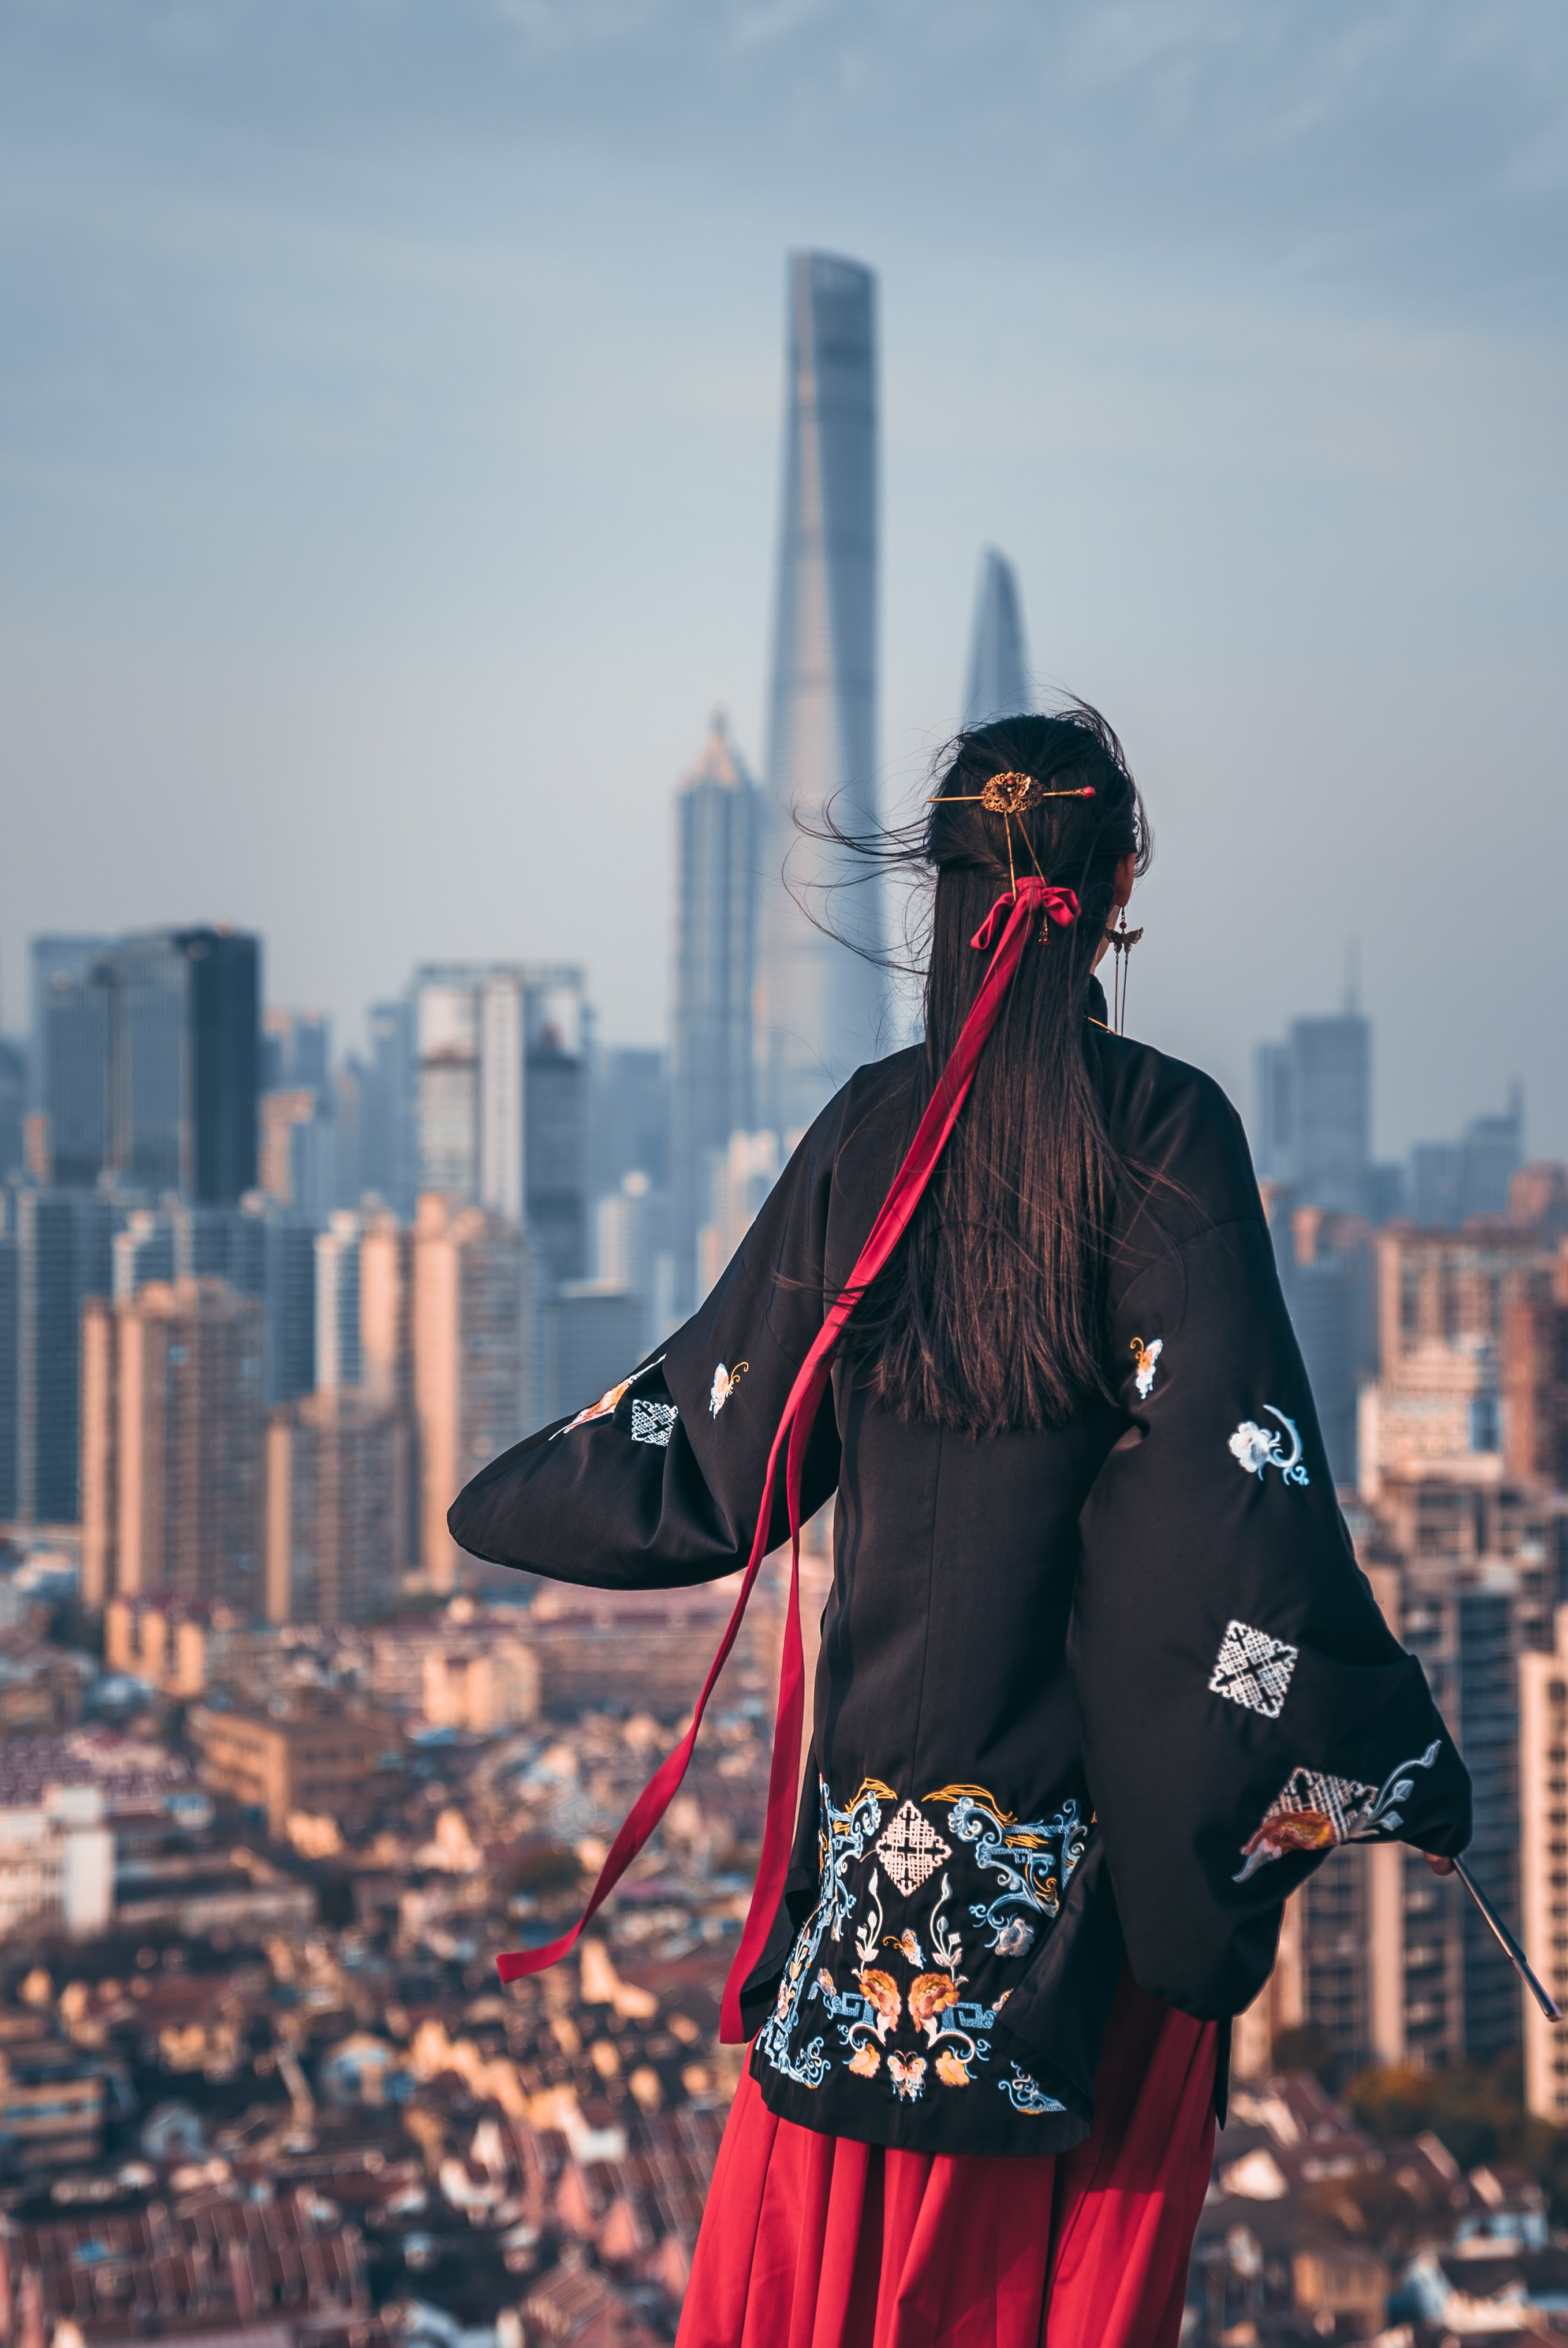 black haired woman in black coat staring at building during daytime